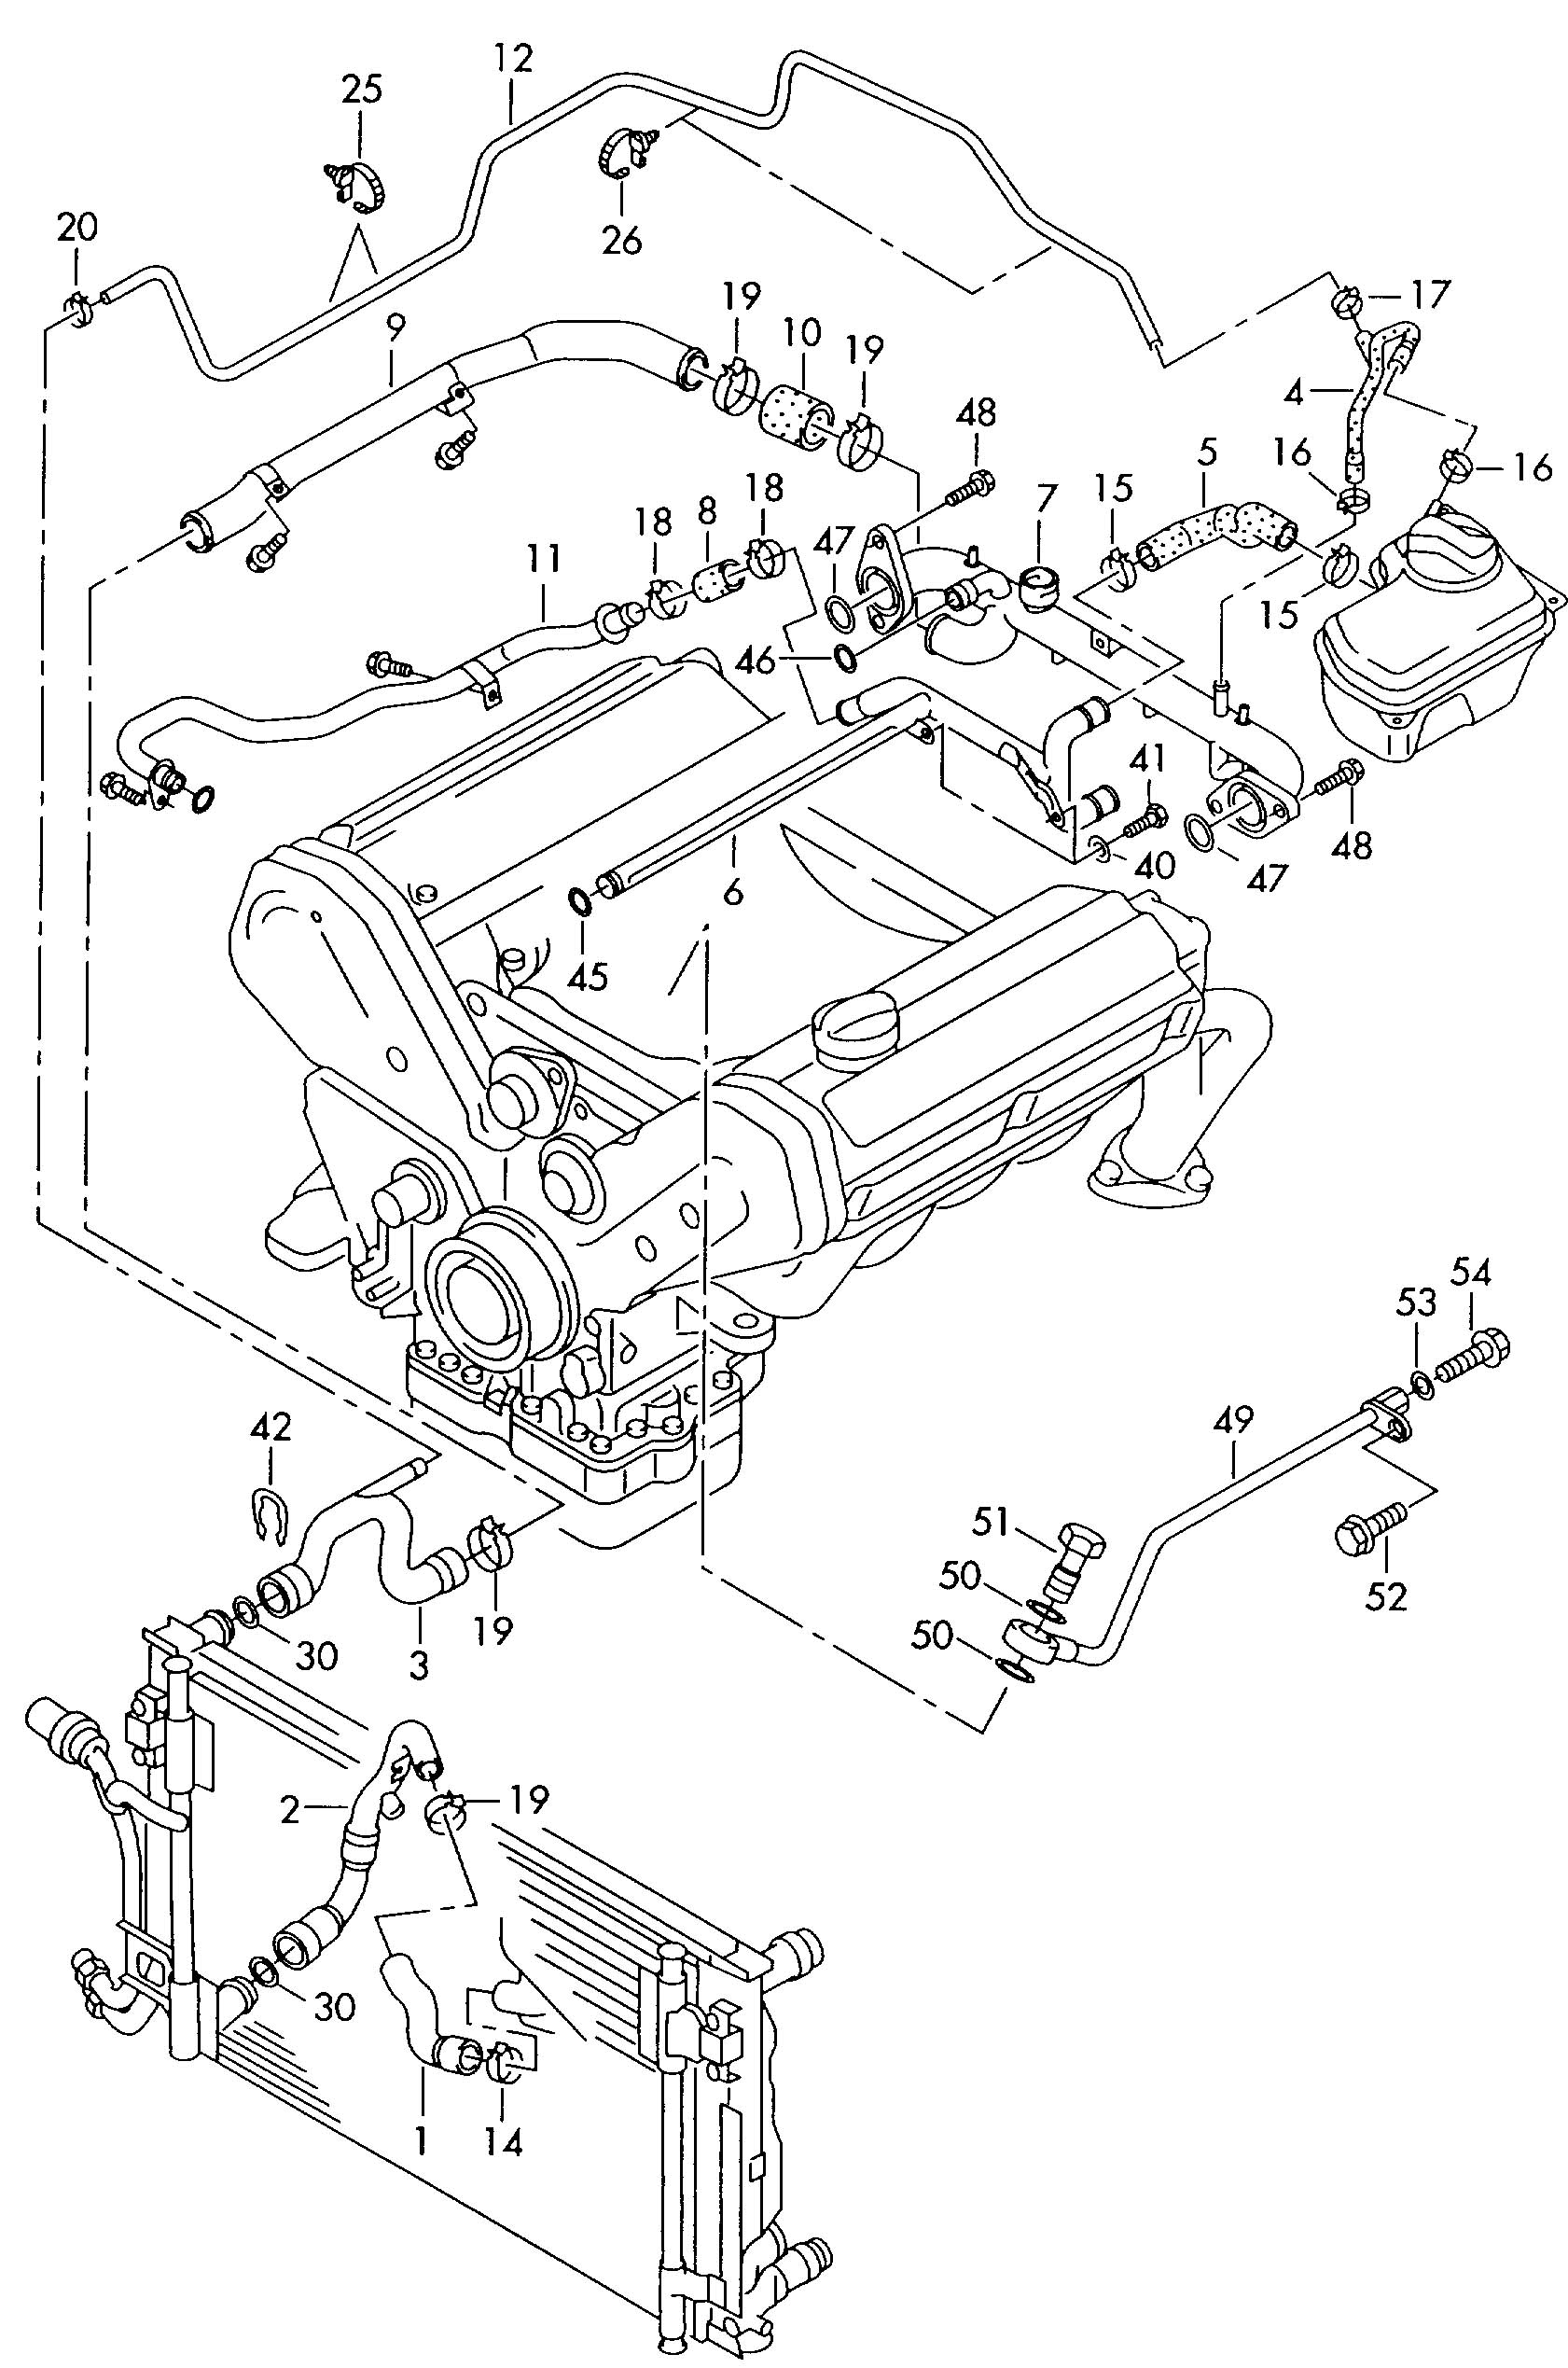 hight resolution of 02 audi a6 3 0 engine diagram audi a4 1 8t engine wiring vw 1 8t engine diagram 2004 audi a4 engine diagram